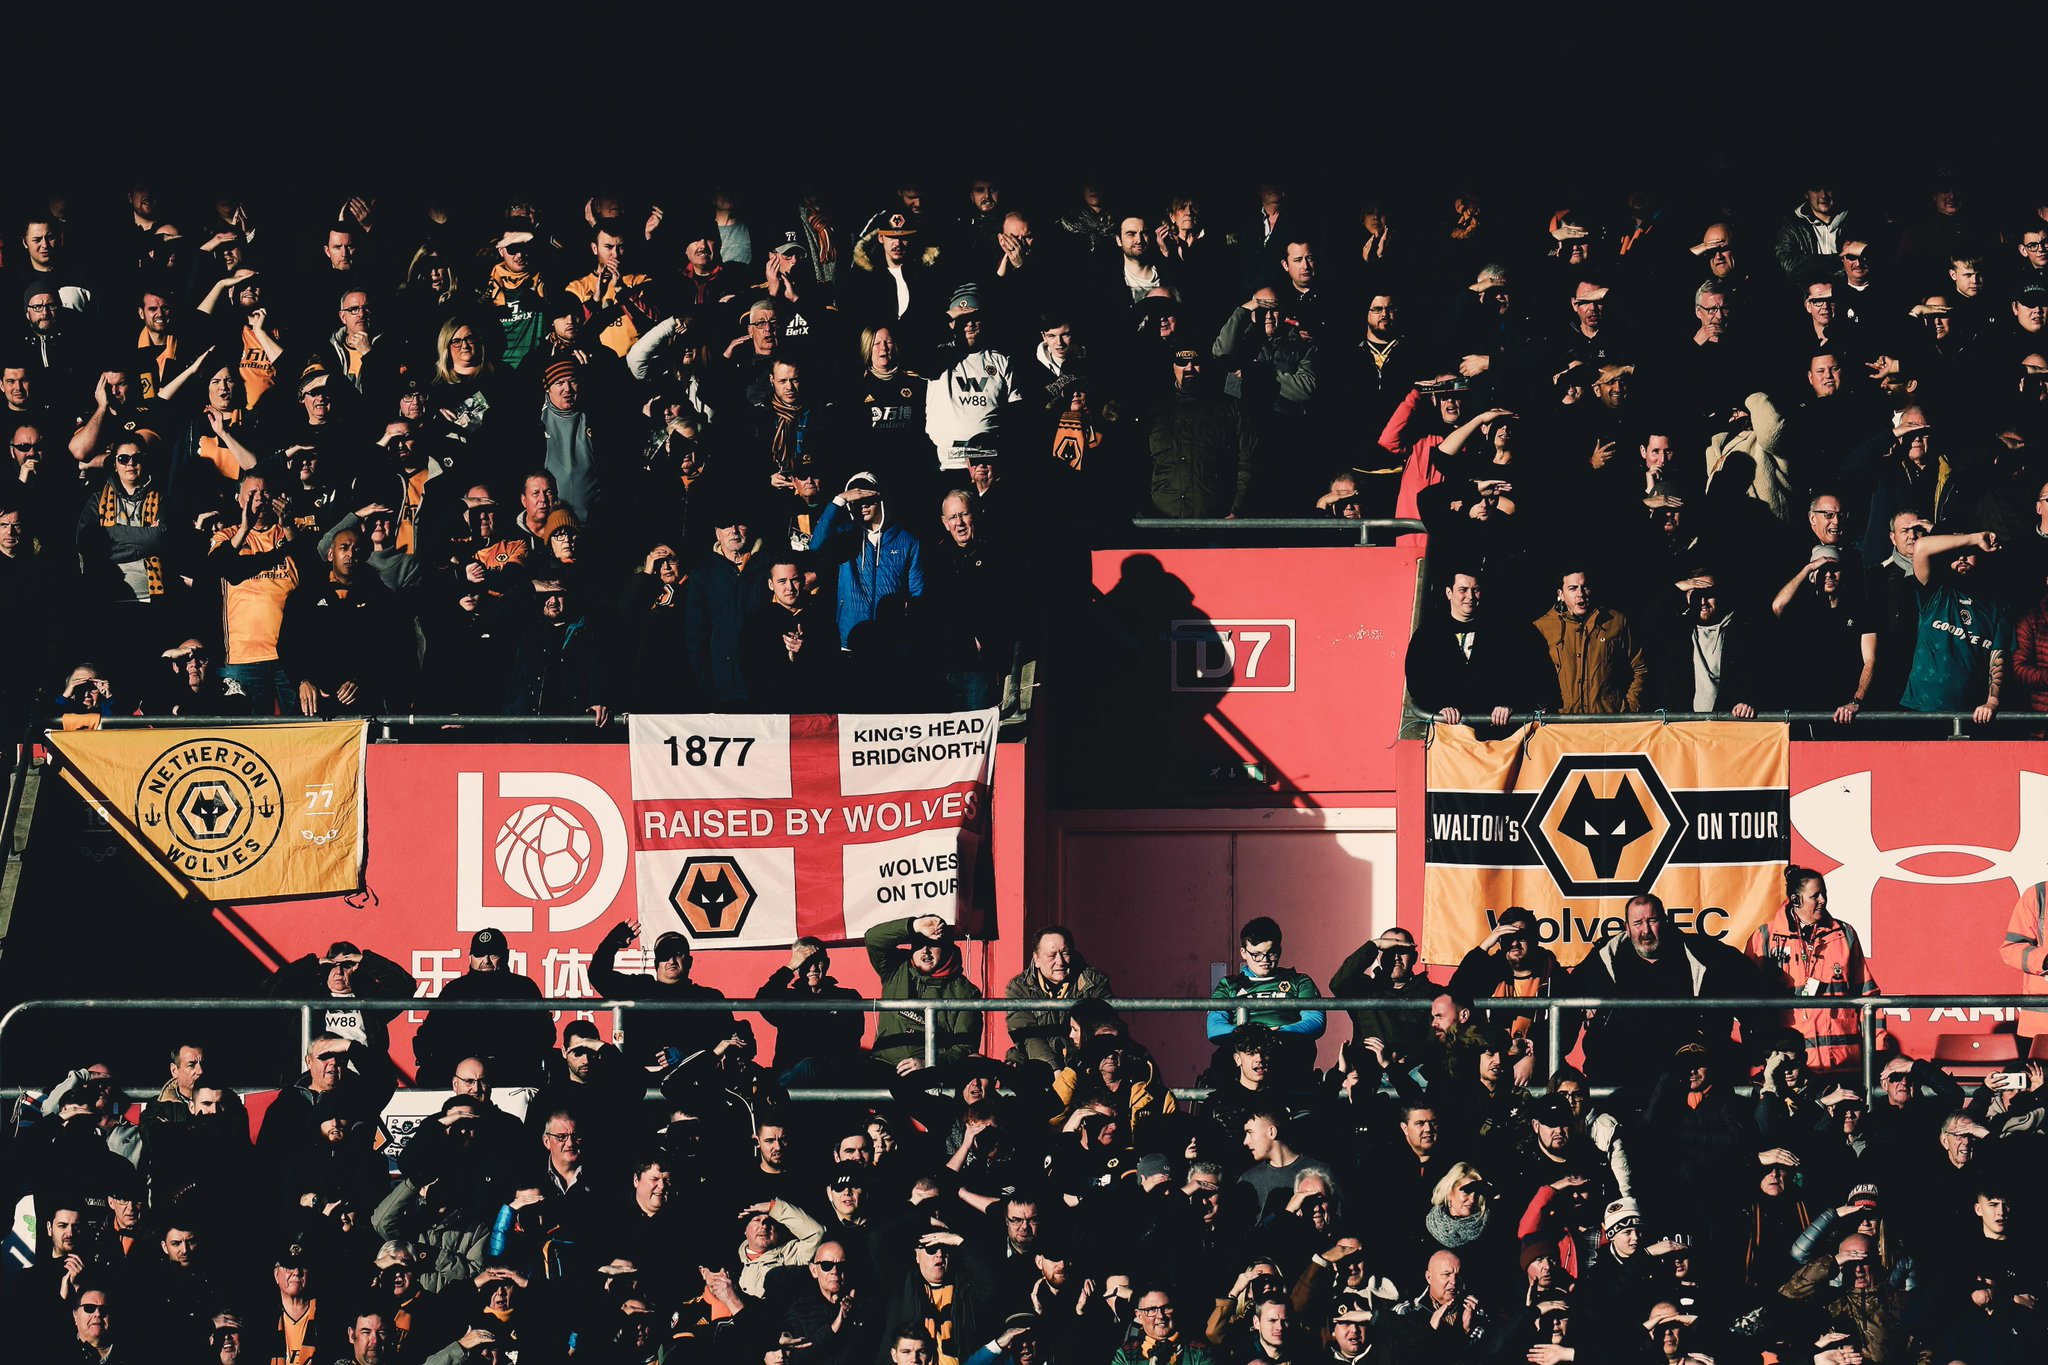 And another thank you to the 3,279 supporters that made the trip to the south coast this afternoon.   Incredible as always.  👏😎 https://t.co/9r7oUFZ8GX